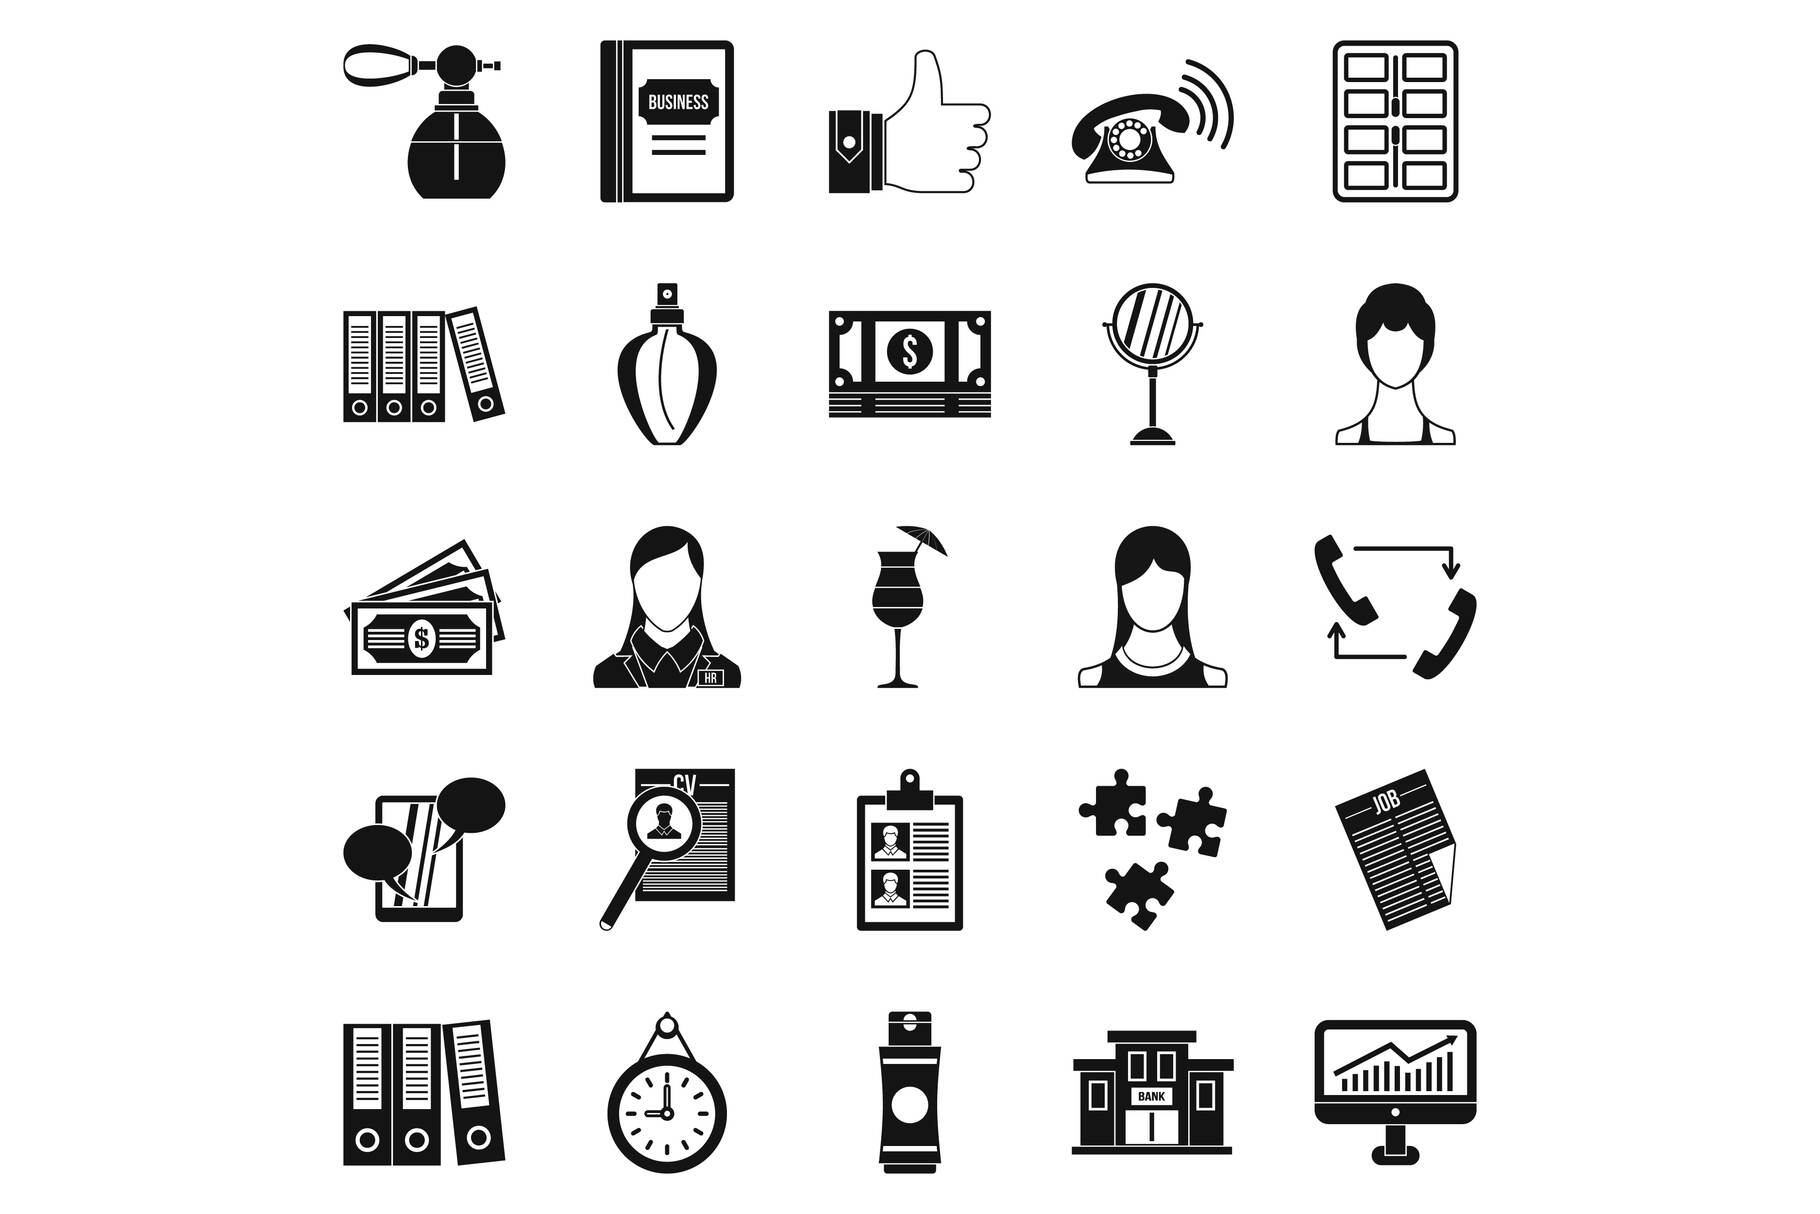 Business studio icons set, simple style example image 1